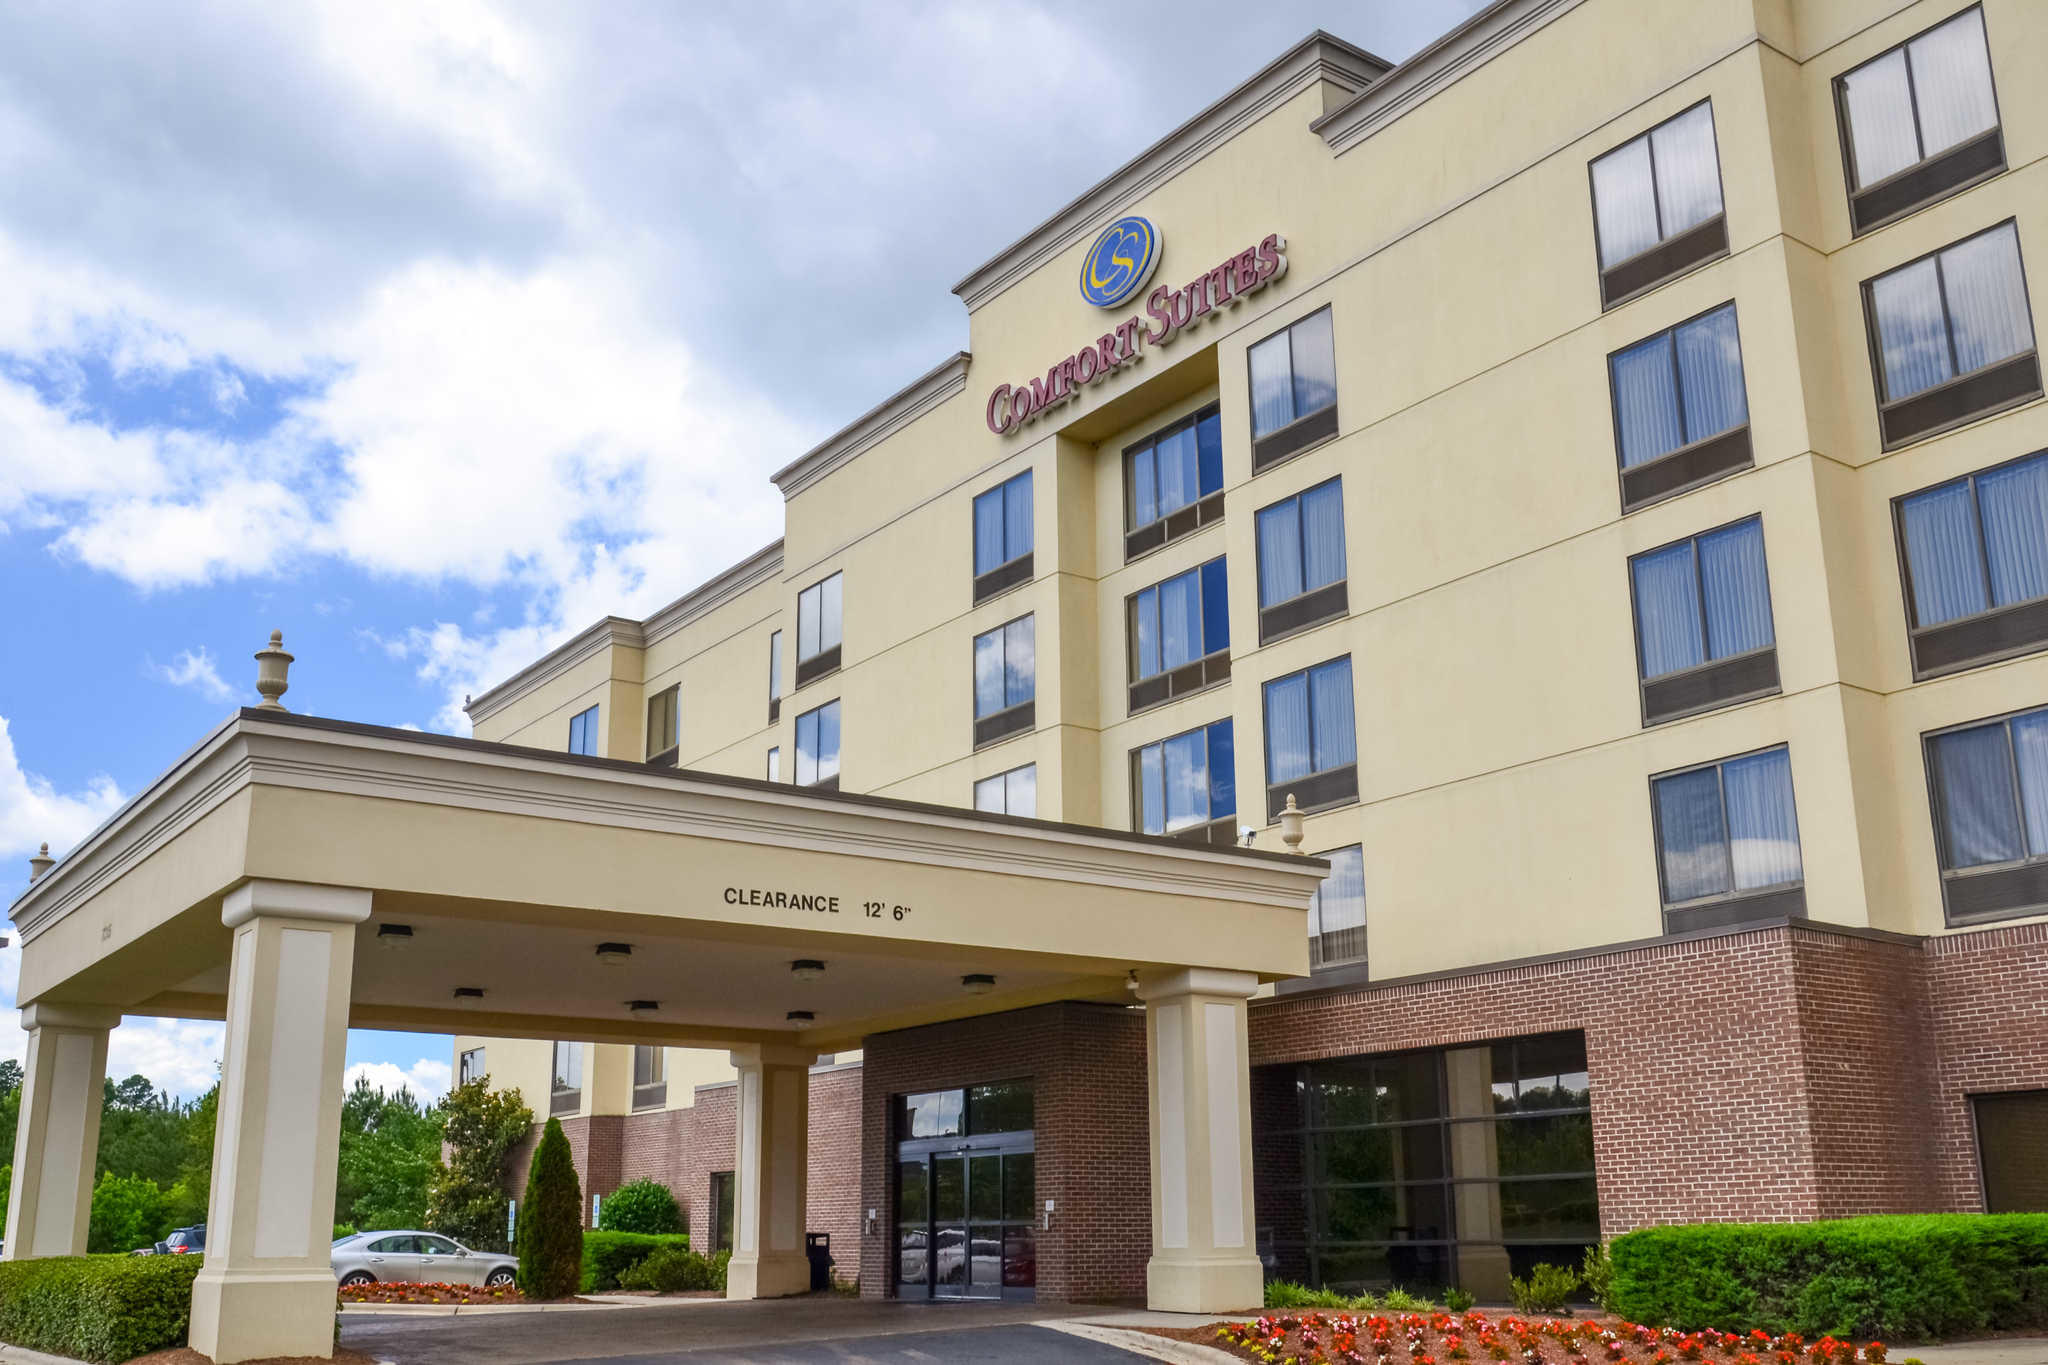 Comfort suites northlake 7315 smith corners blvd for Hotels in charlotte nc near charlotte motor speedway